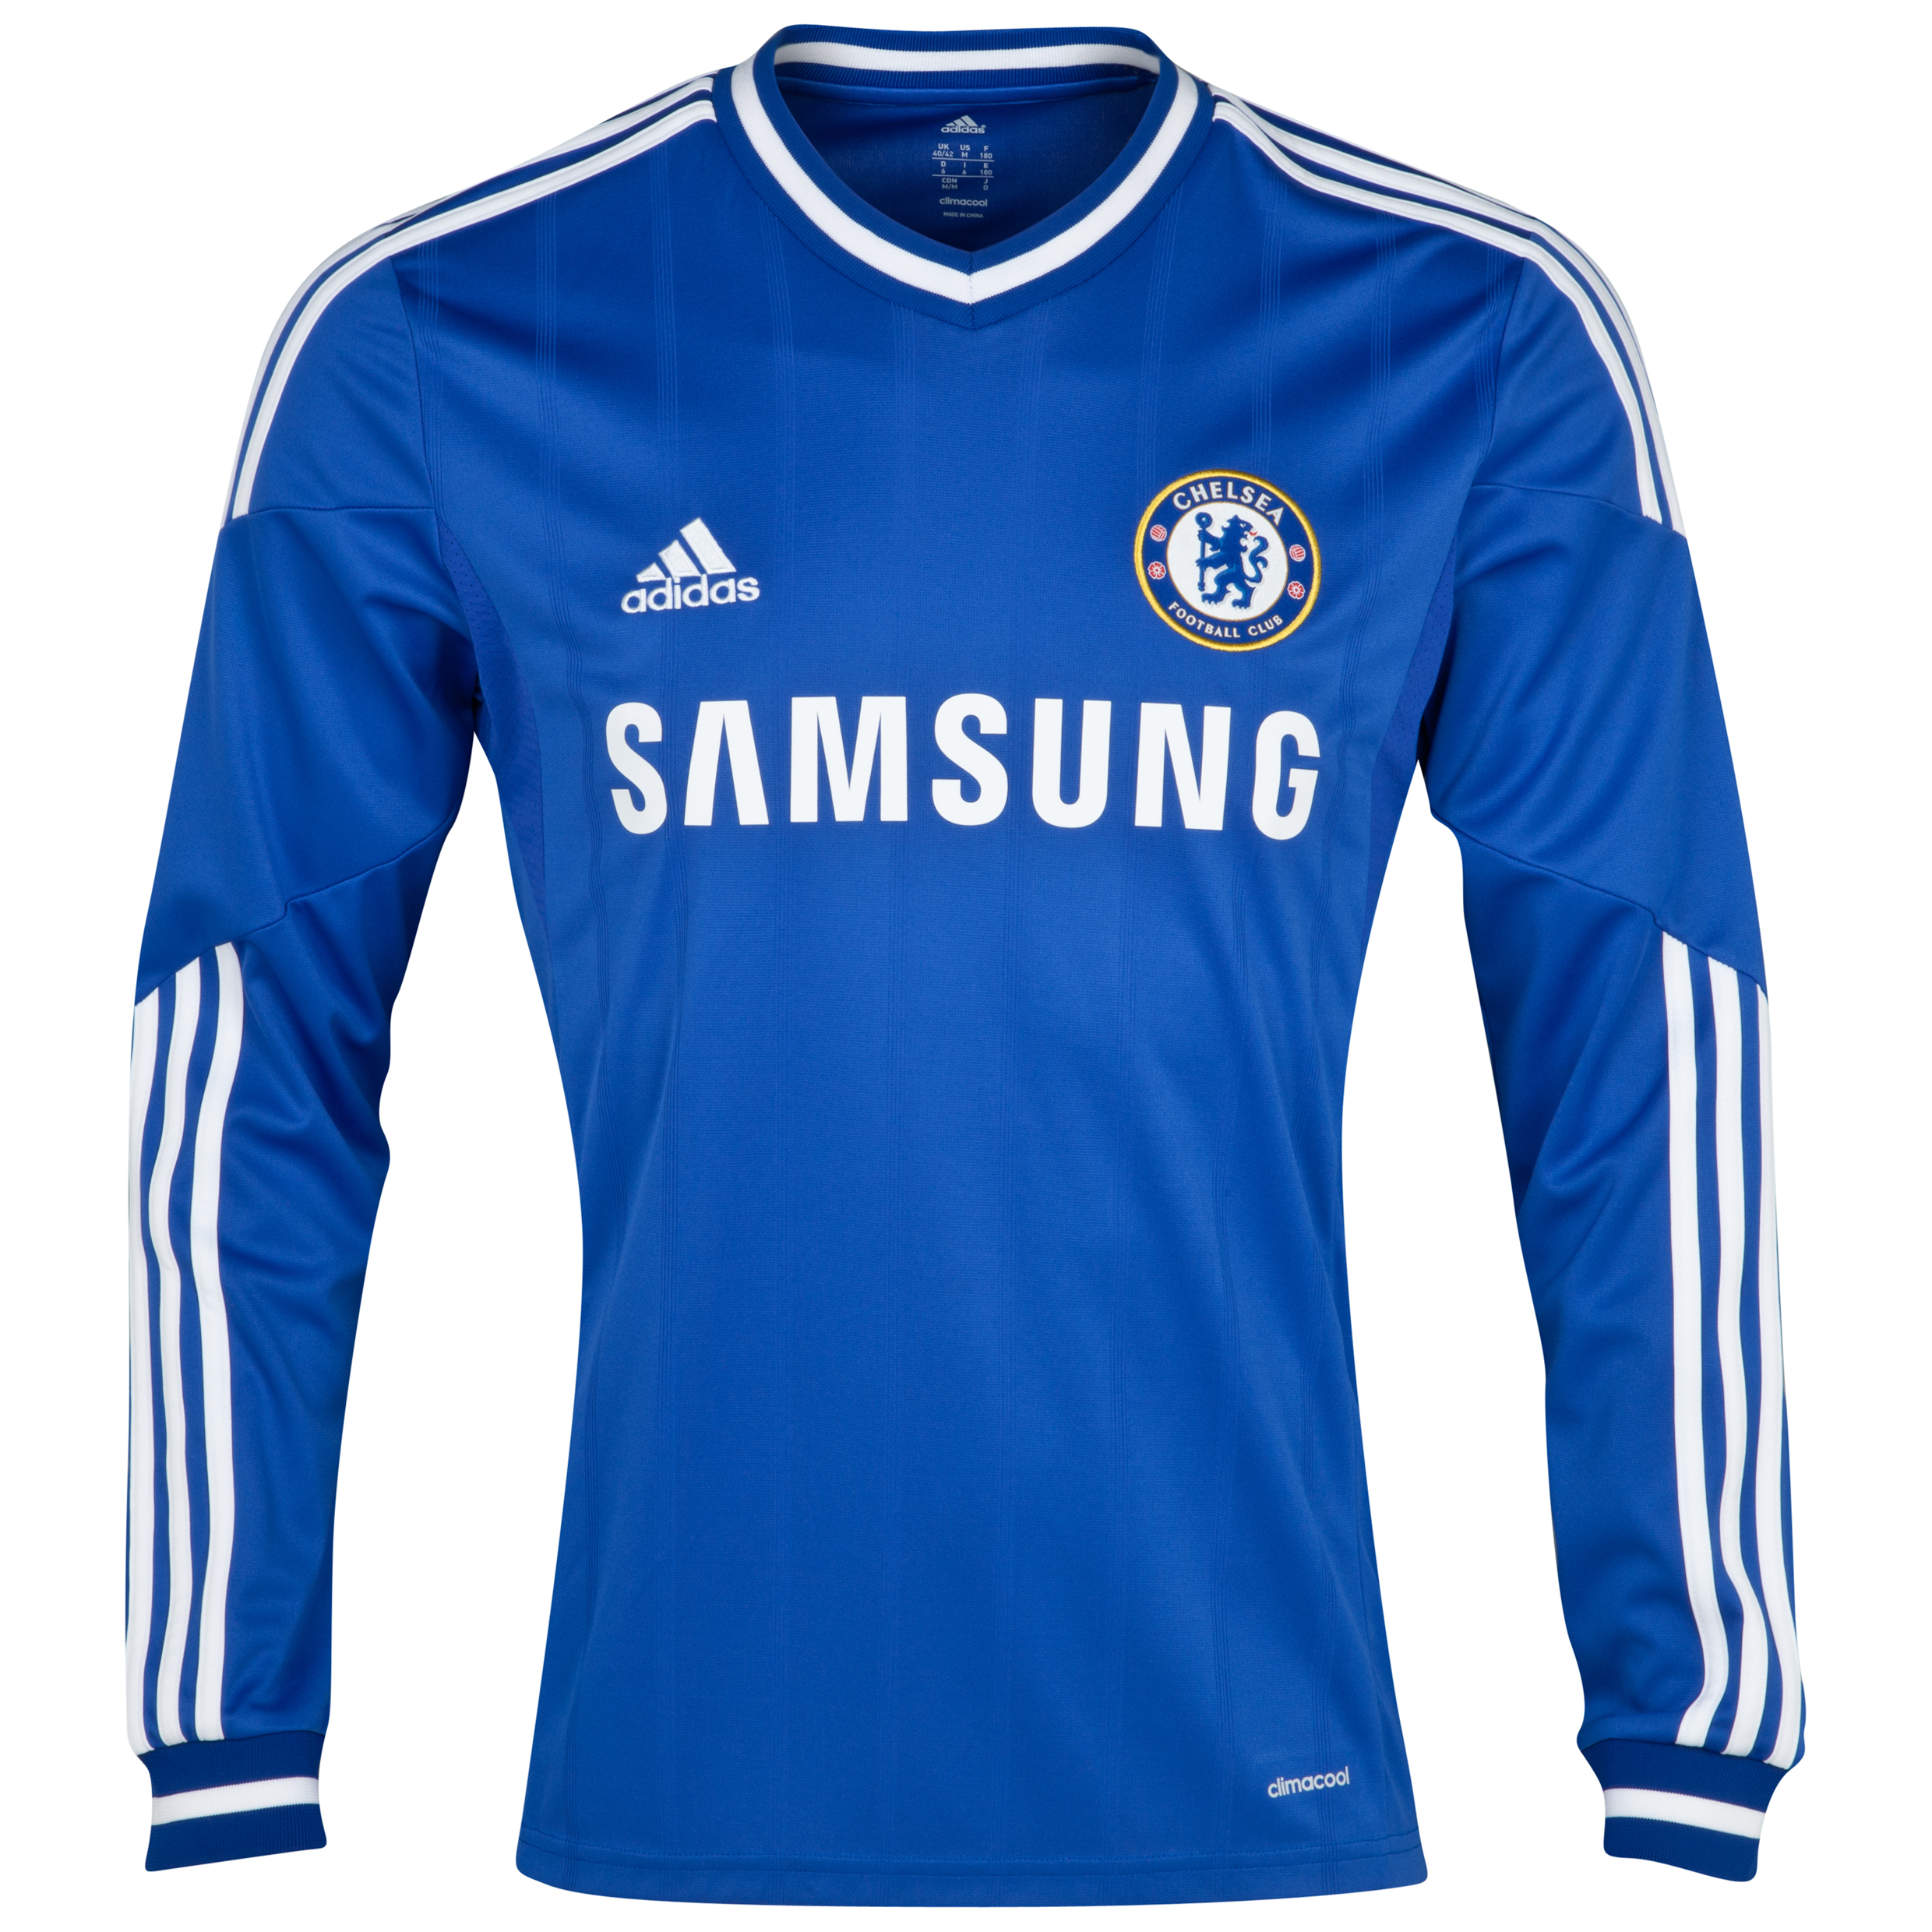 Chelsea Home Shirt 2013/14 - Long Sleeve